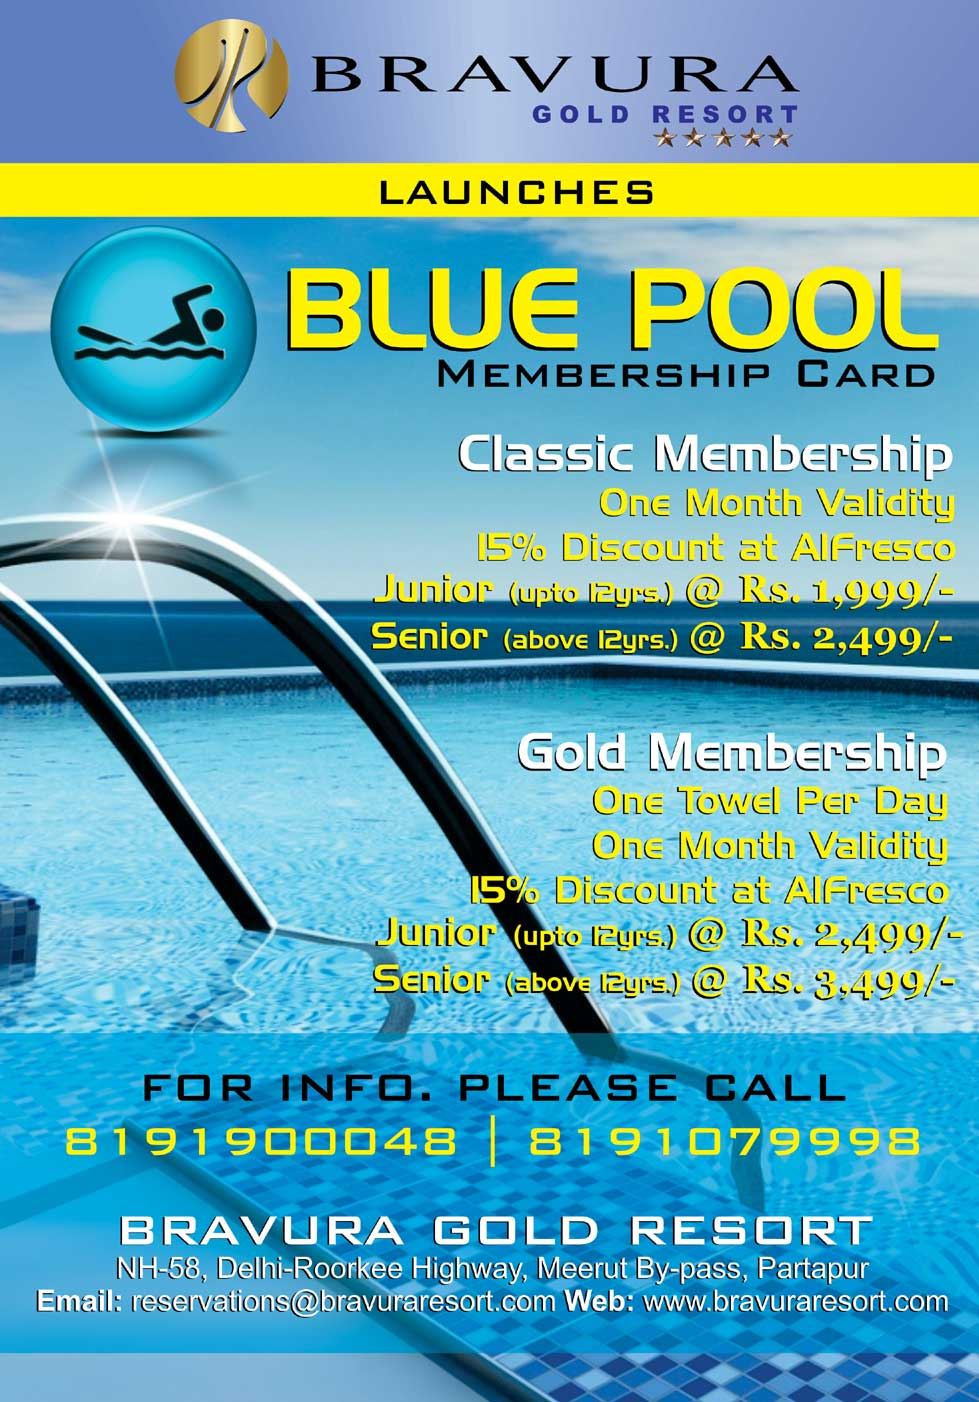 Beat the Heat with Blue Pool Membership at Bravura Gold Resort!!!